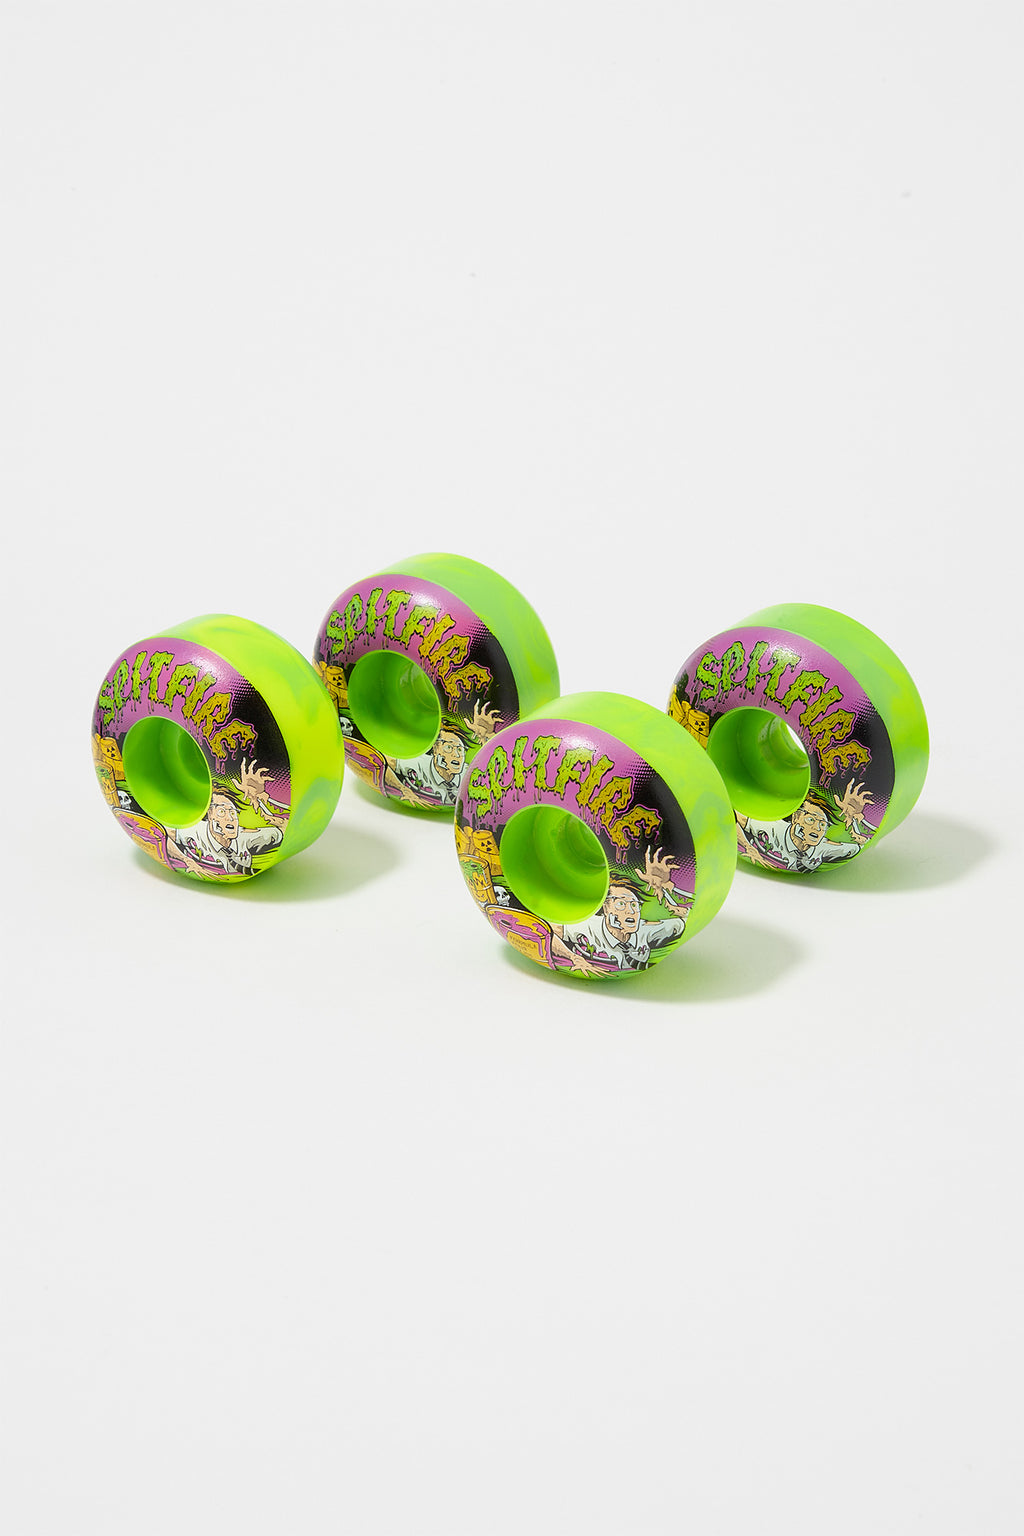 Spitfire F4 Toxic 52mm Skateboard Wheels